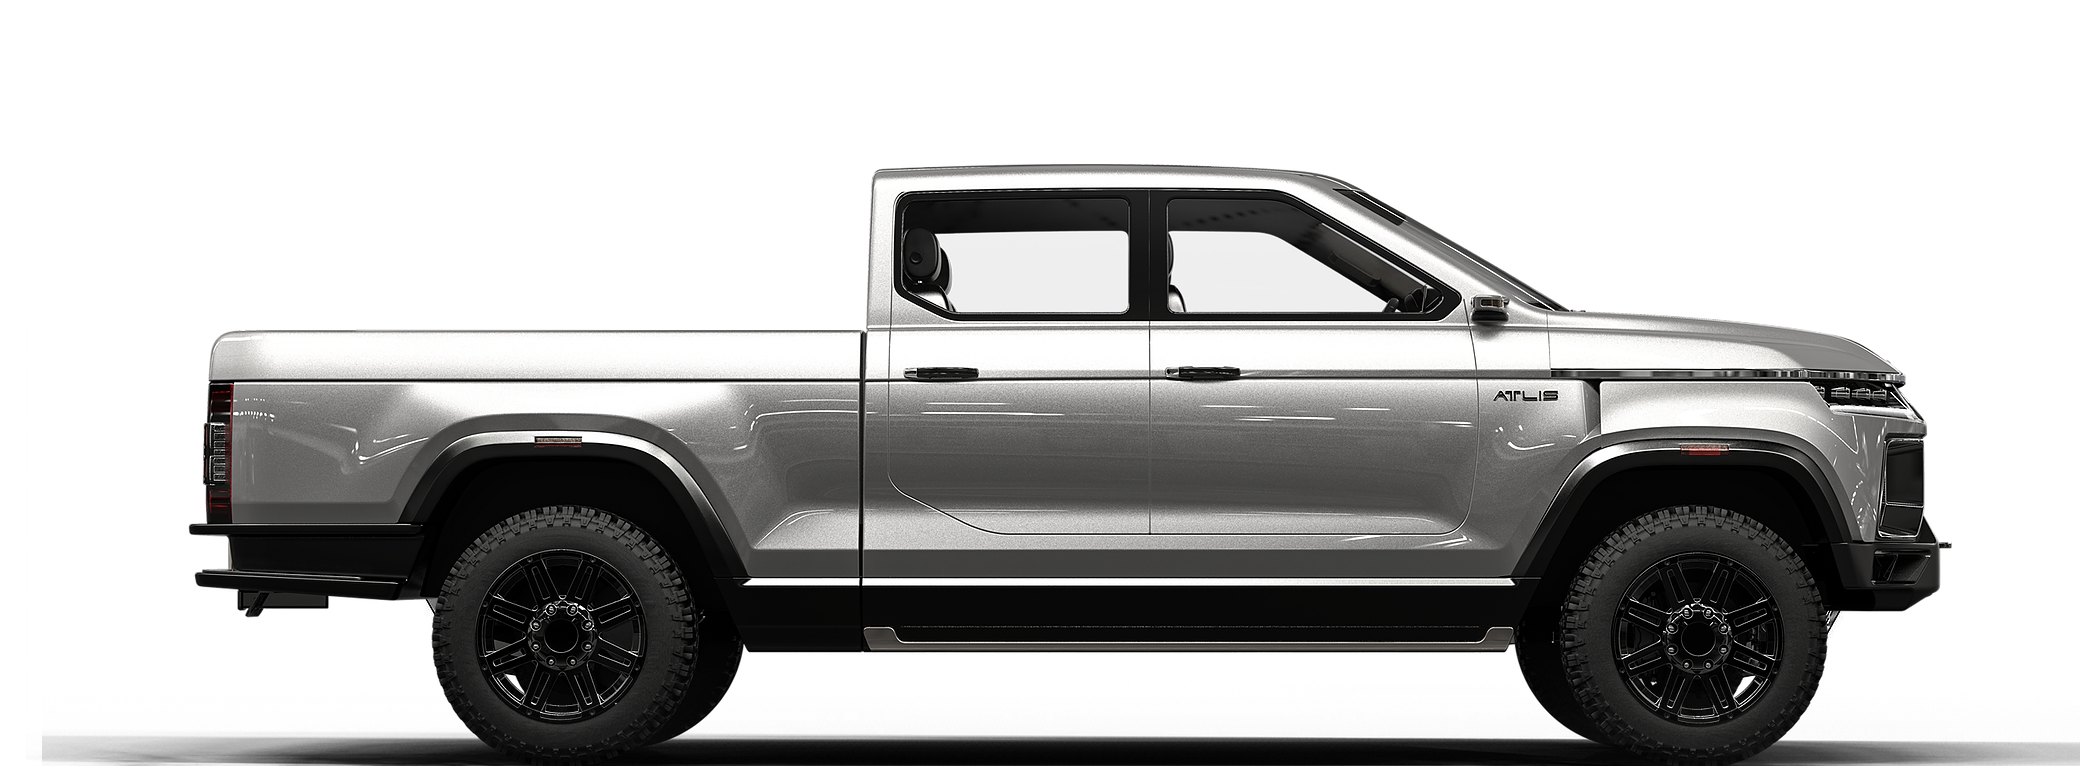 Dually option available on new electric pickup | Medium Duty